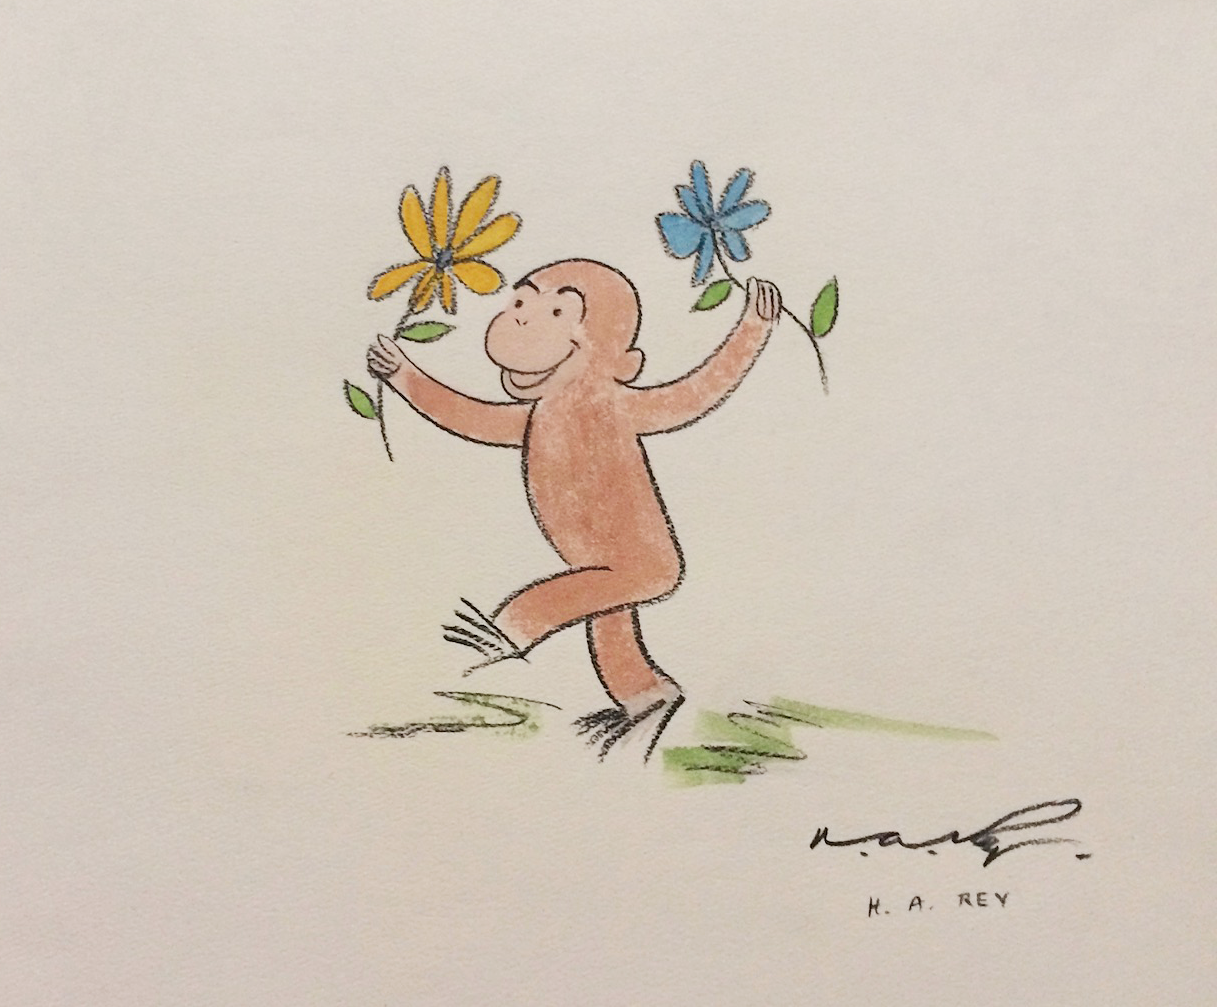 H.A. Ray    Curious George    c. late 1960''s - early 1970's  Original Vintage Illustration  10.5 x 12 in.